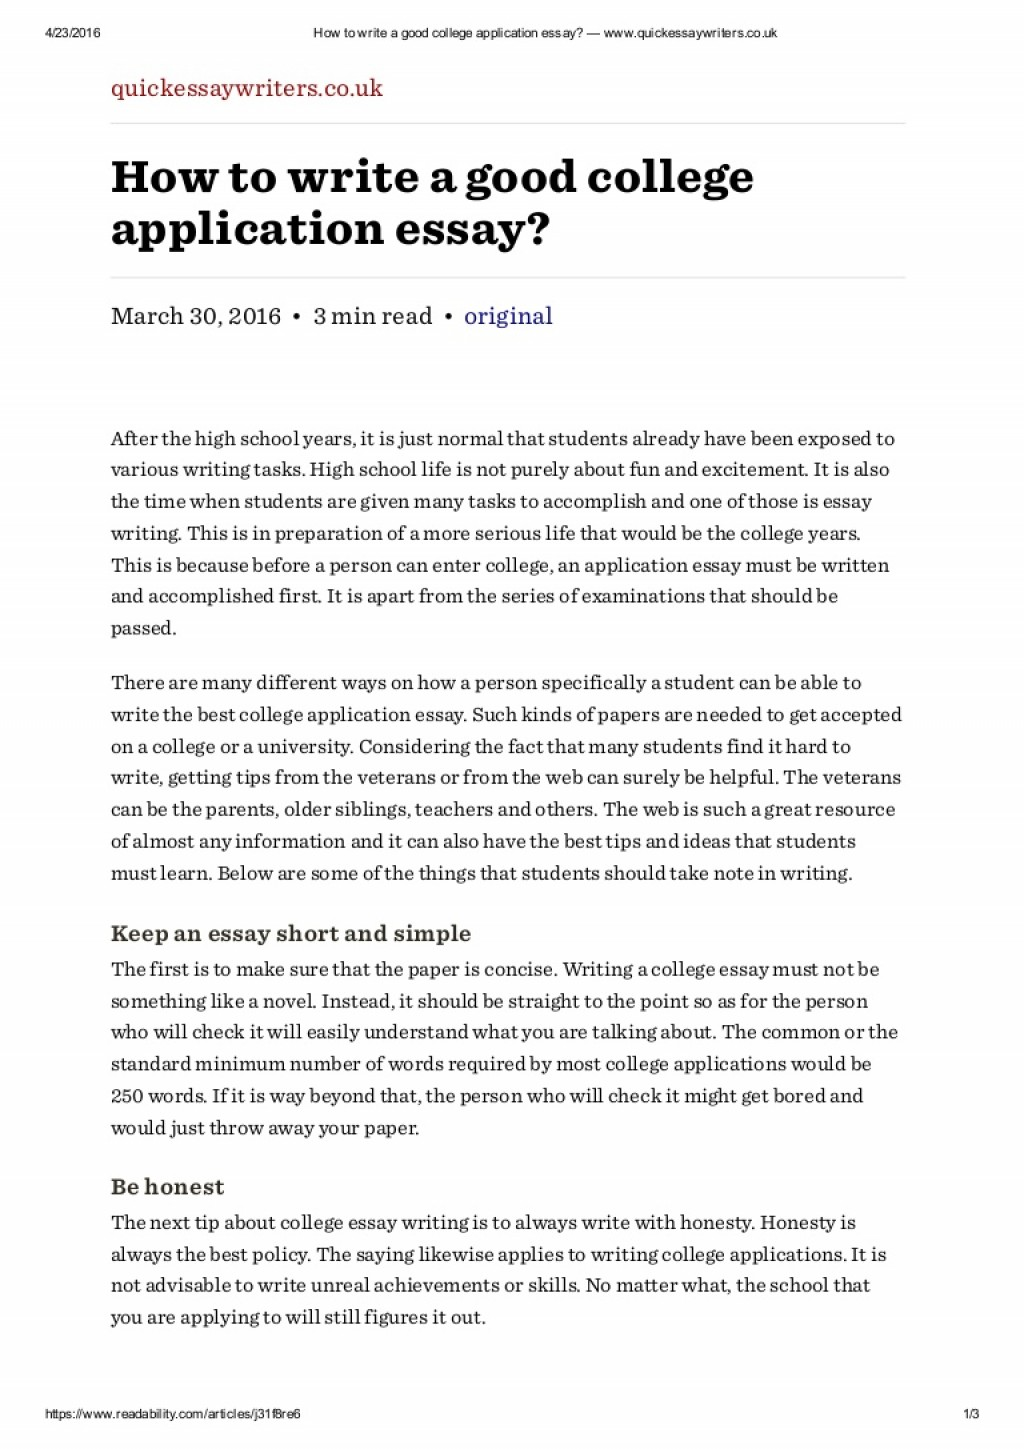 009 Howtowriteagoodcollegeapplicationessaywww Thumbnail Essay Example Writing College Rare A Application How To Write Term Paper Outline Topics On Examples Large